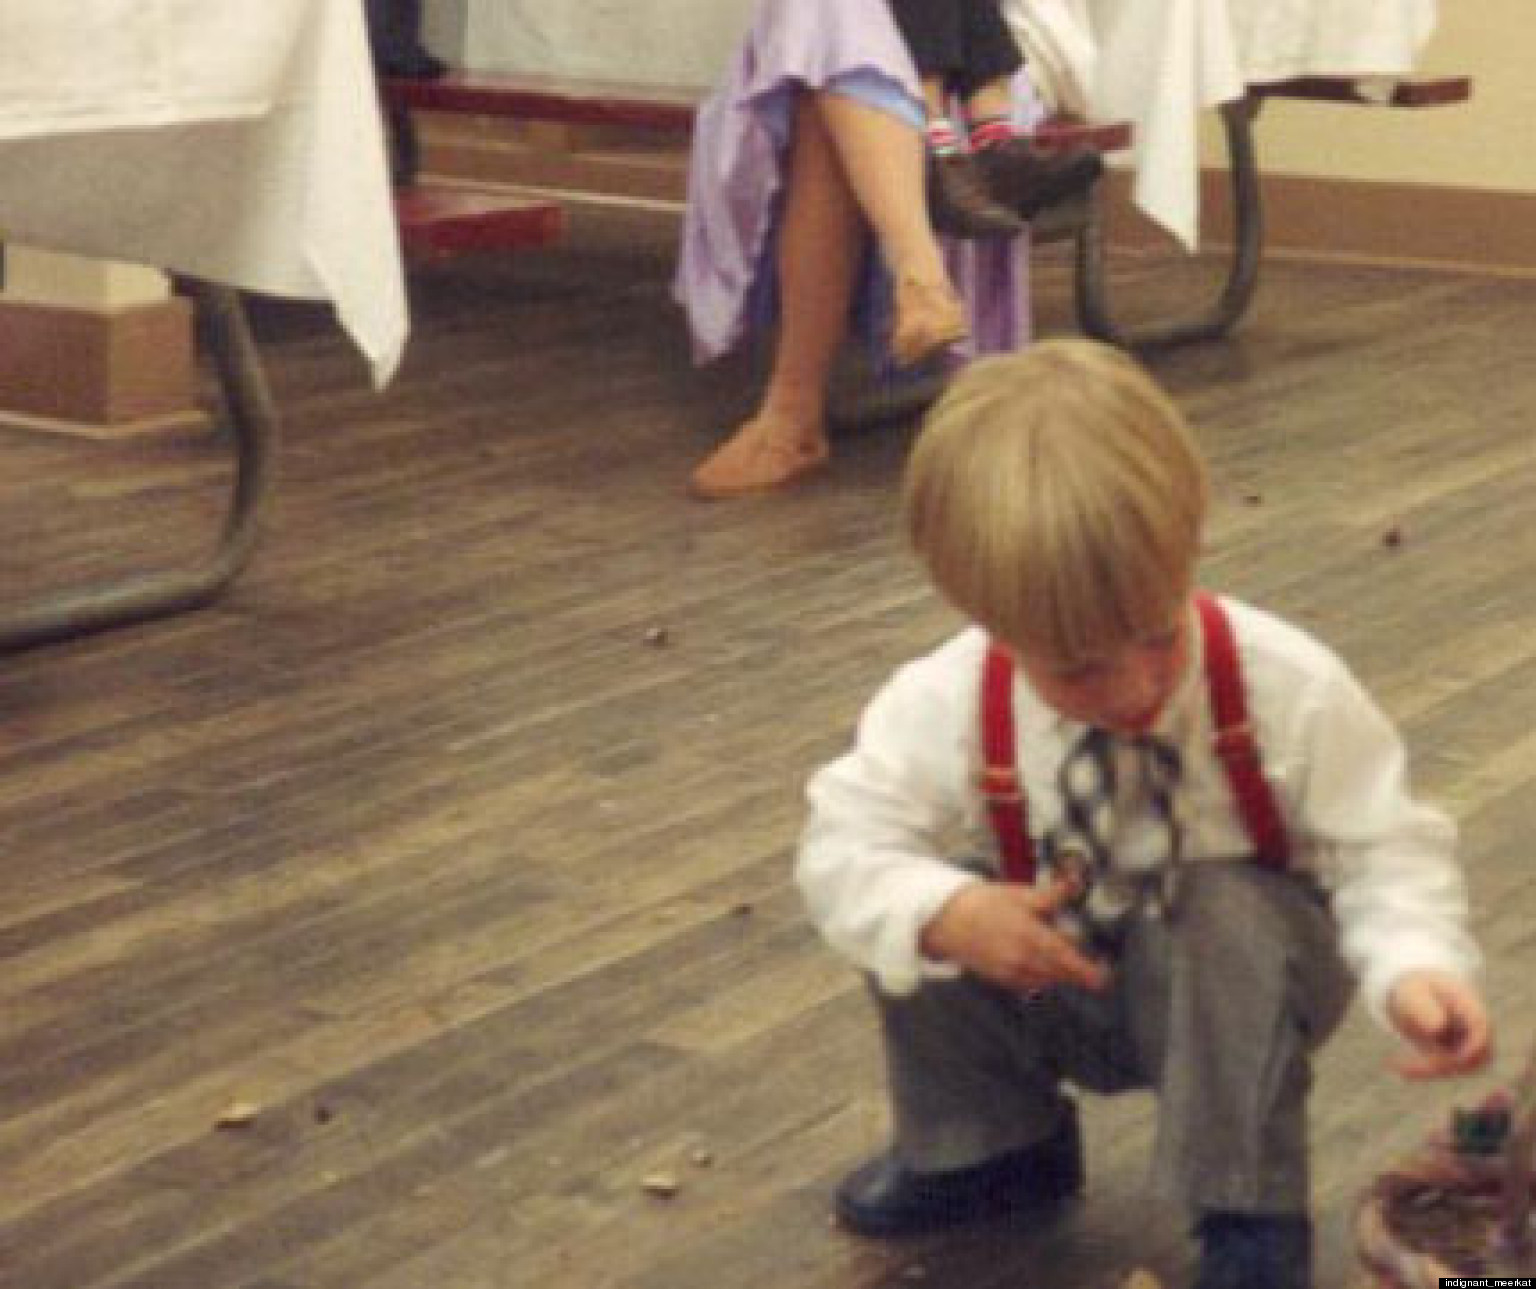 LOOK: Little Boy Cleans Up After Messy Flower Girls